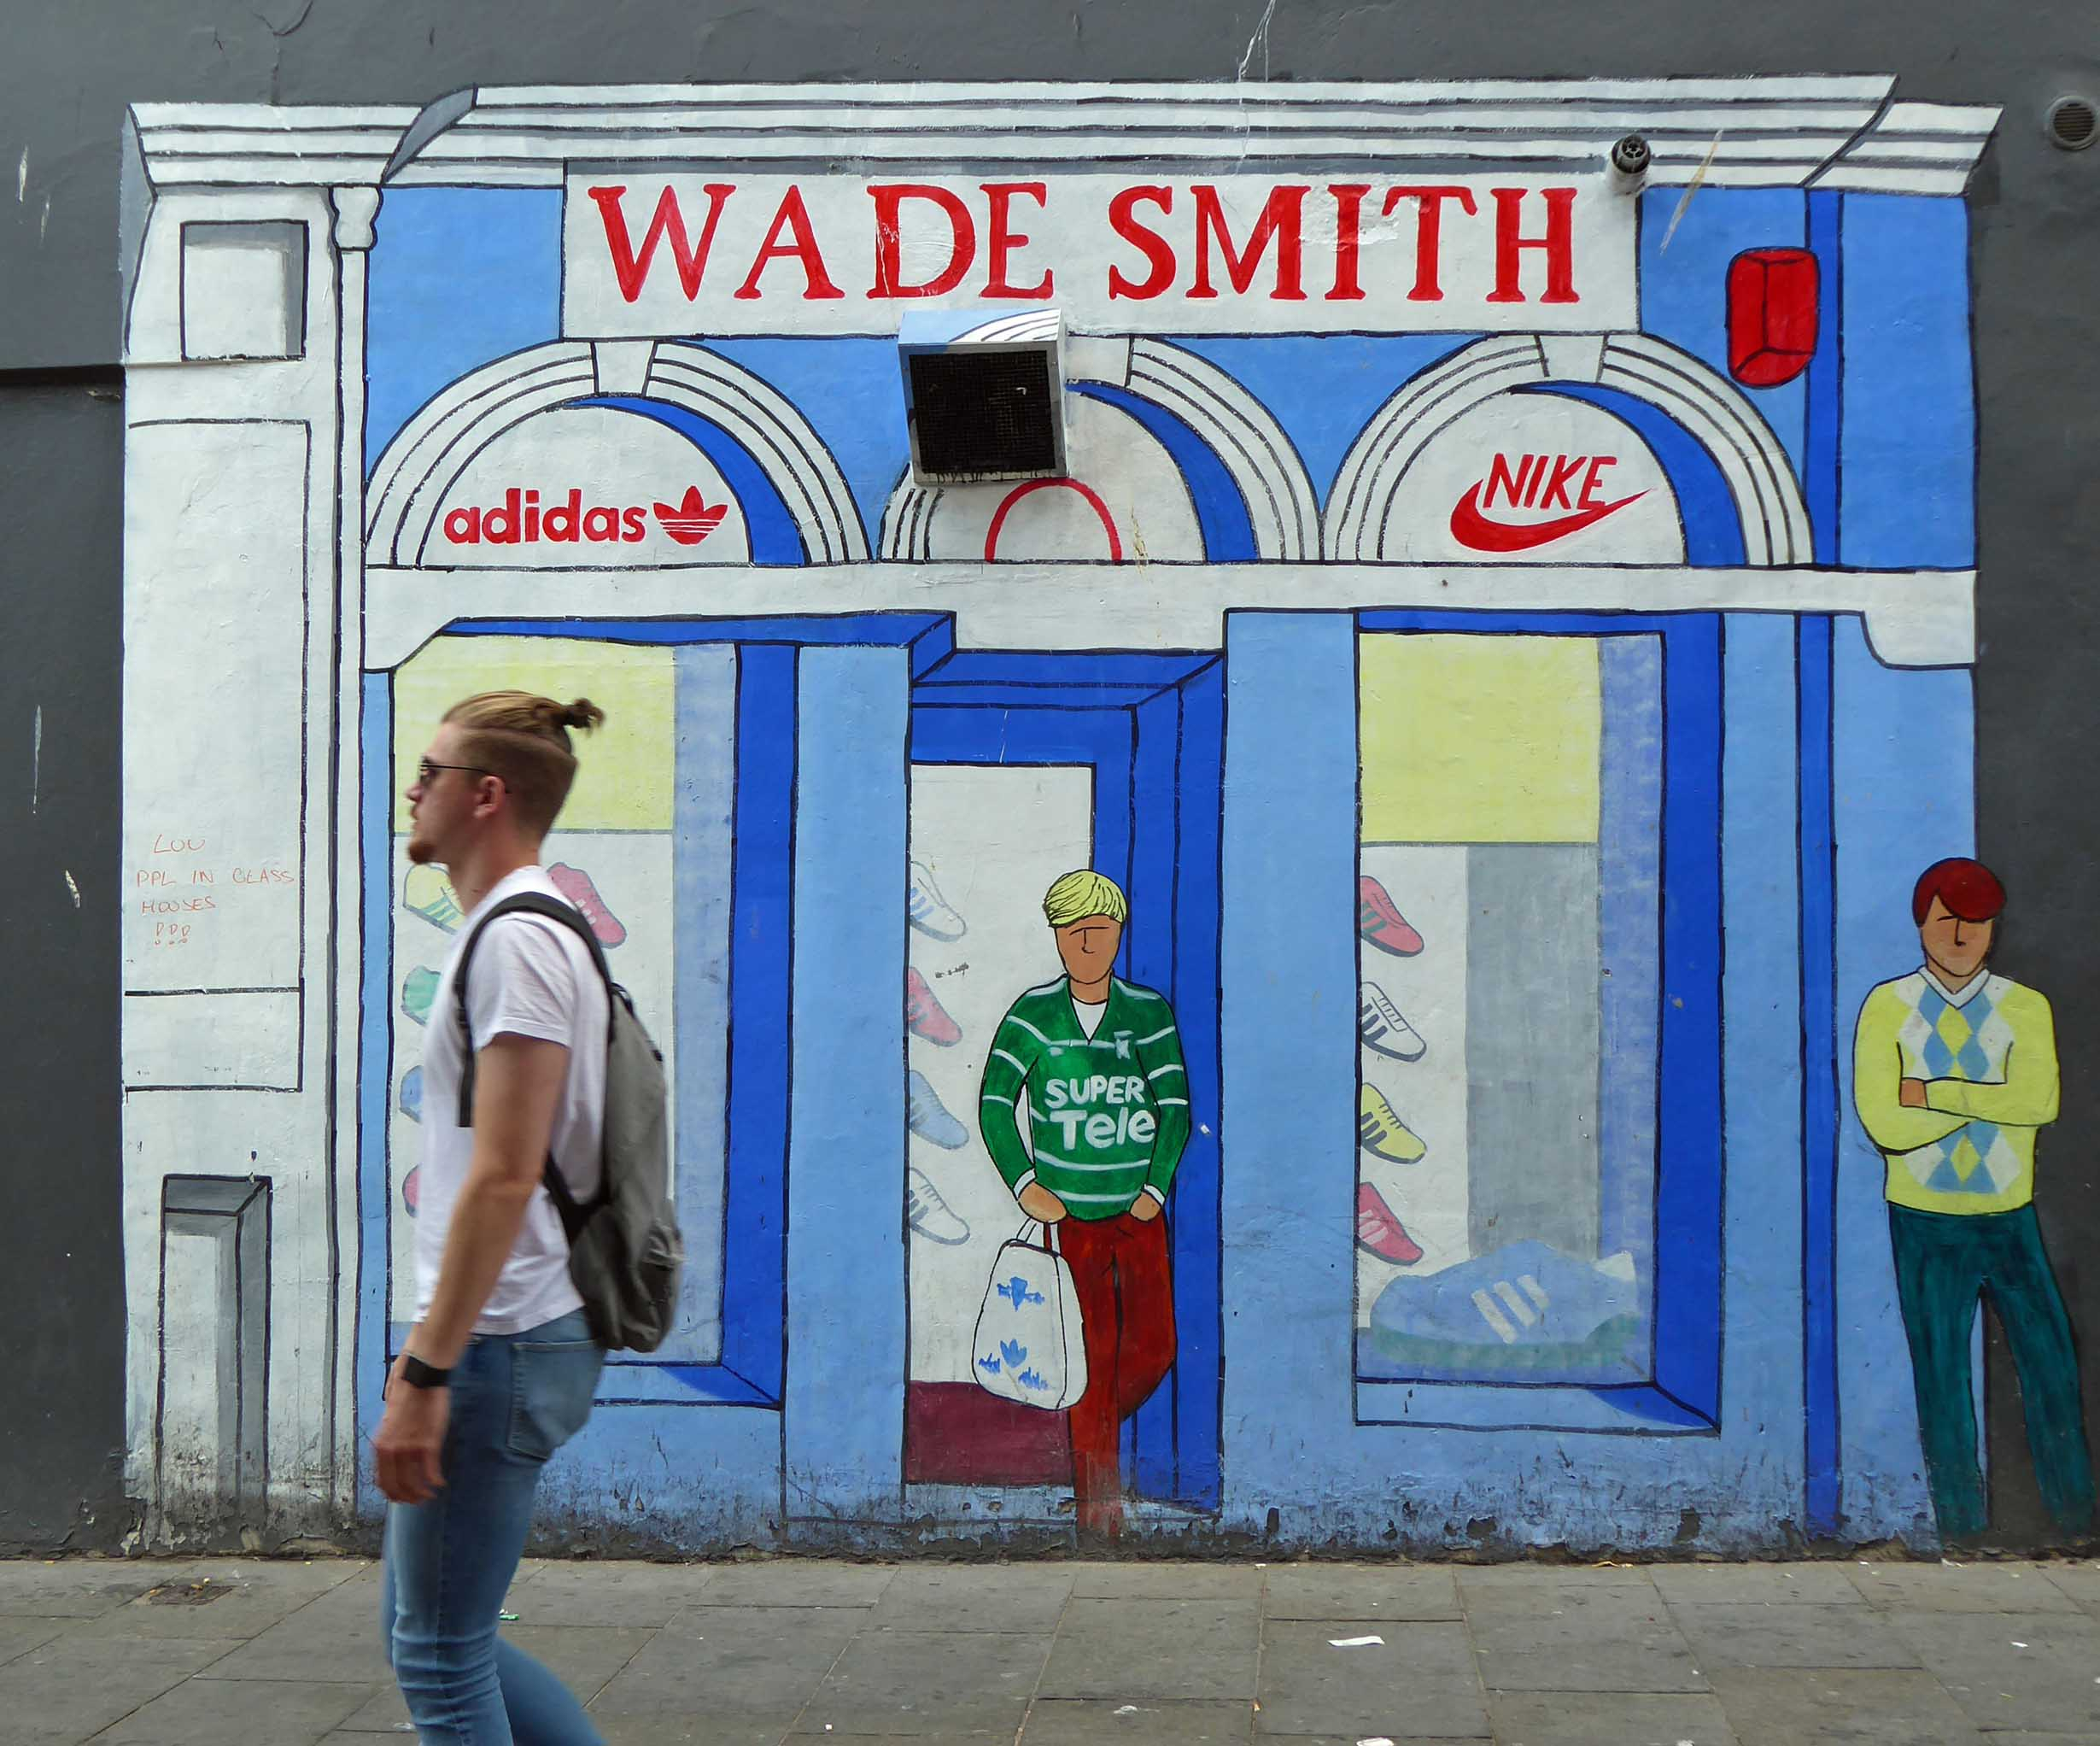 Mural of a sports shop frontage with man passing